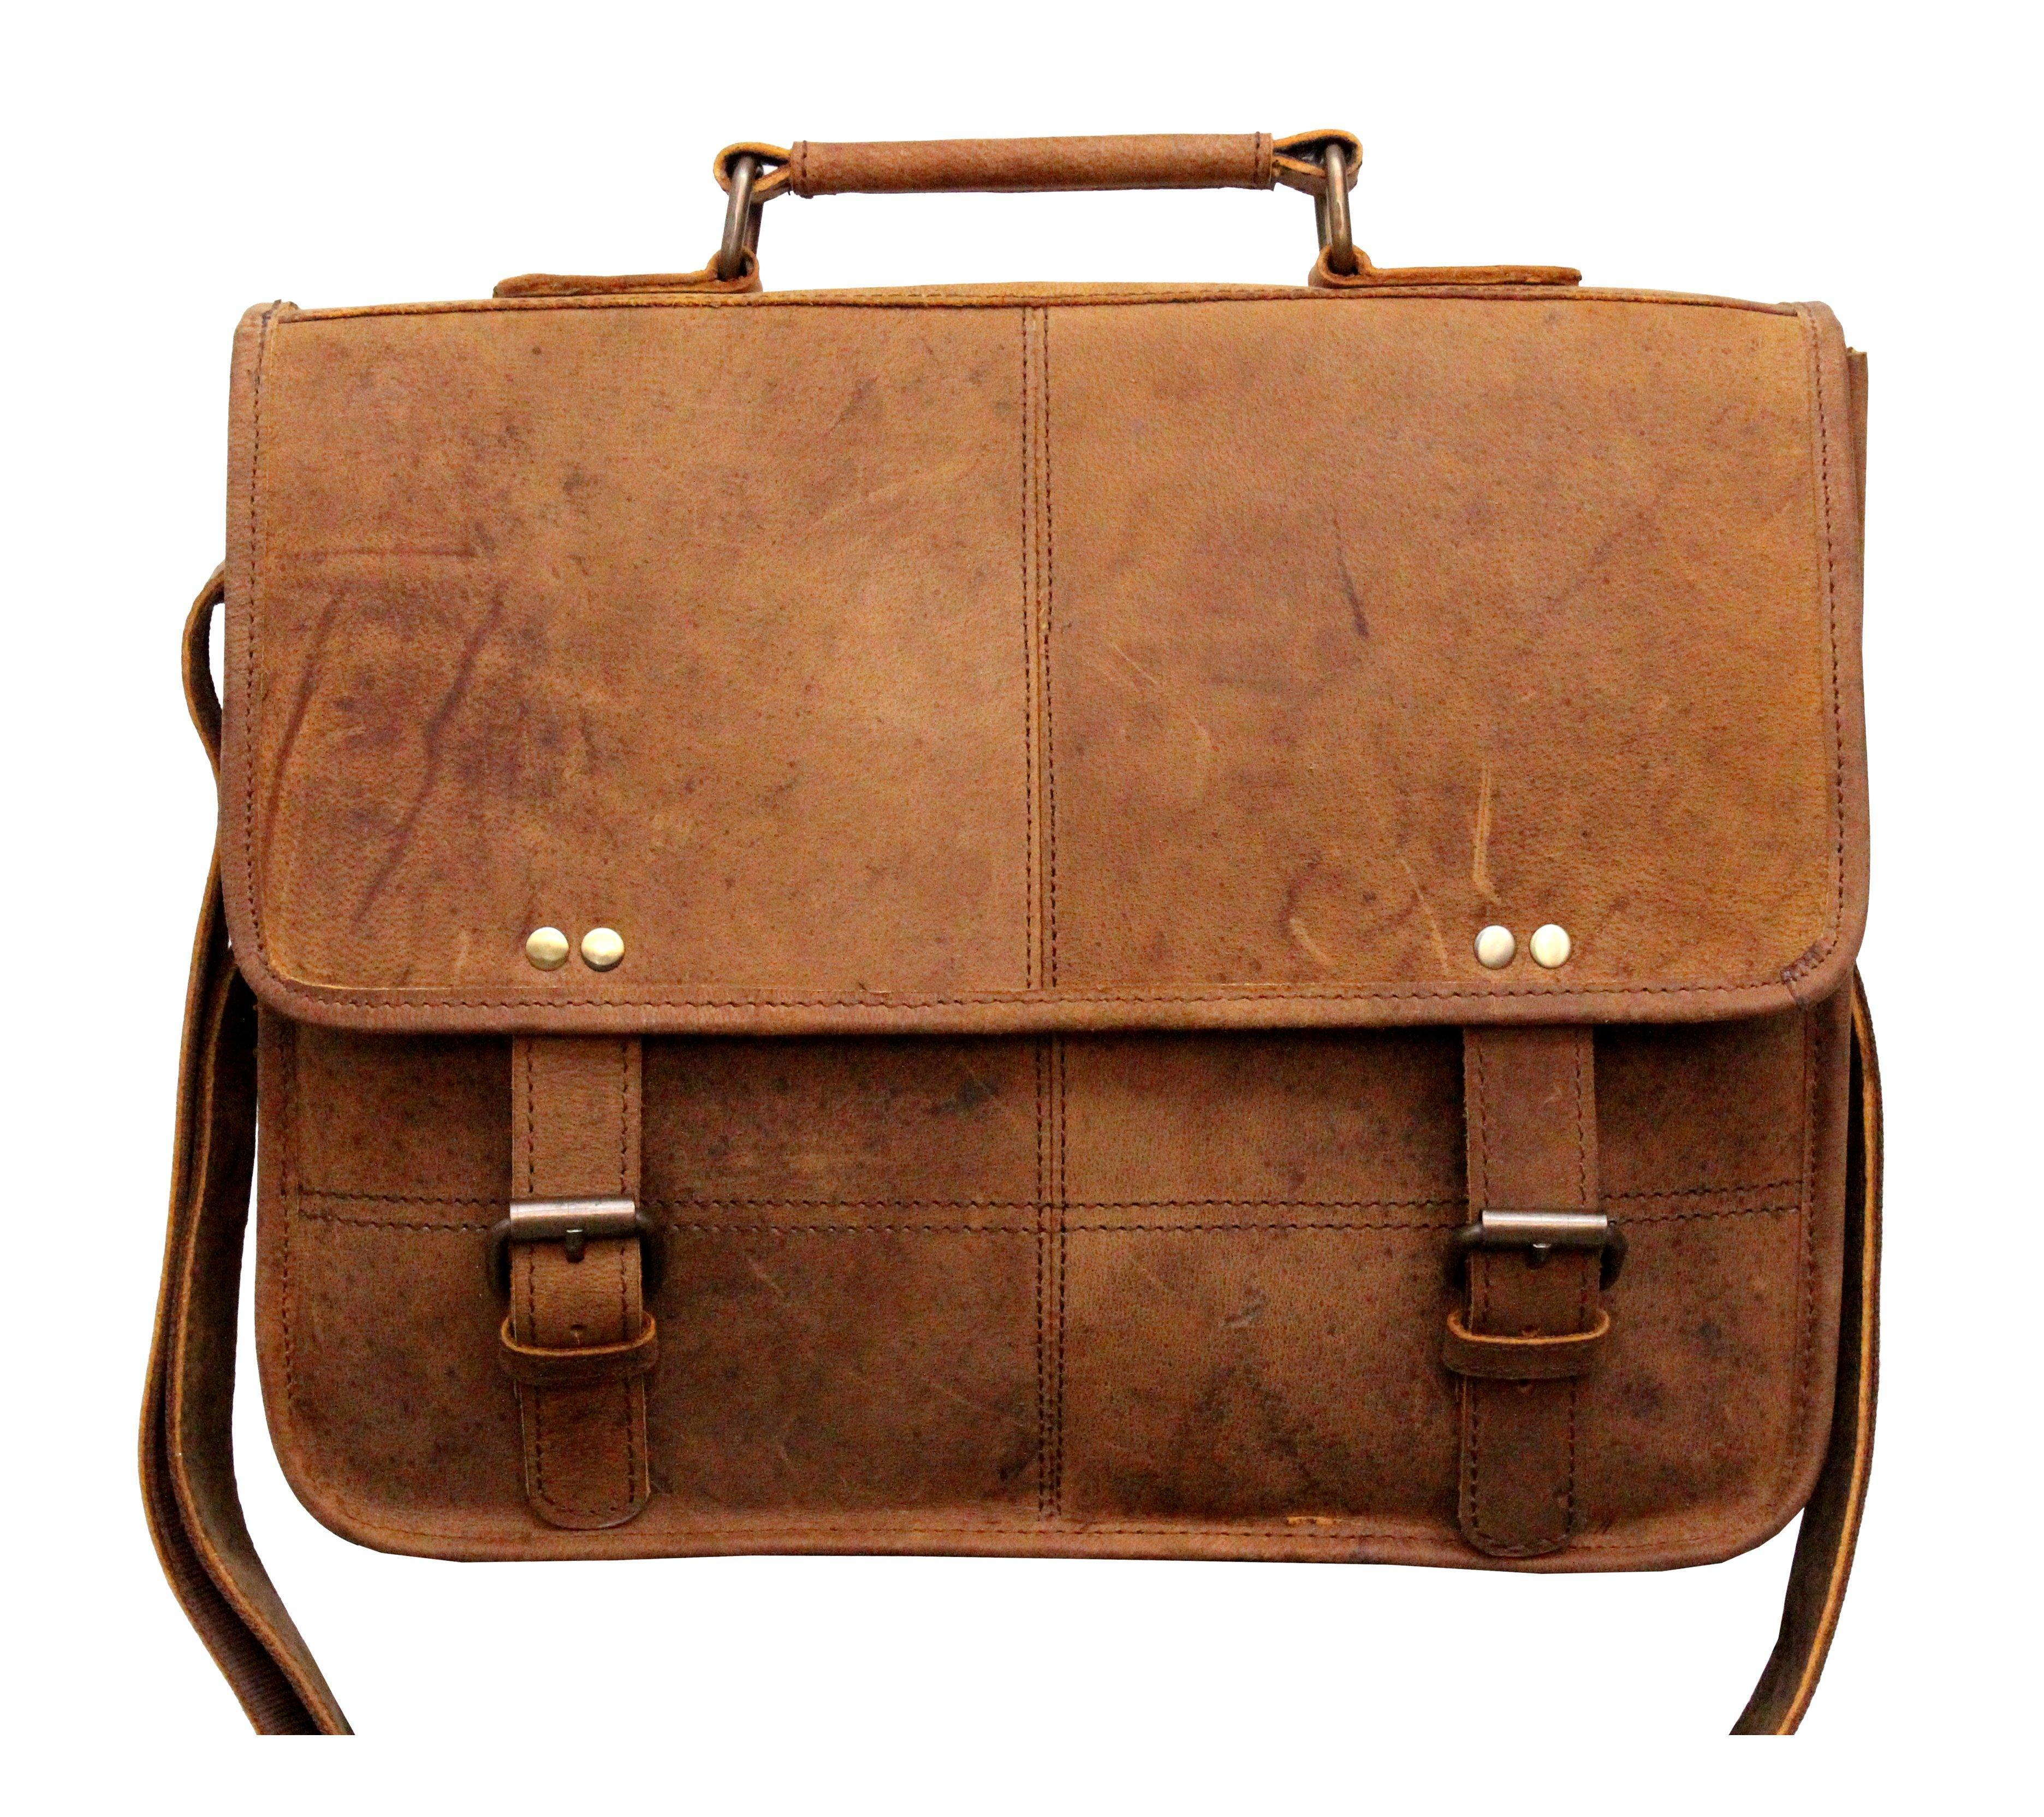 Leather - IN-INDIA Vintage Buffalo Leather Messenger Satchel Laptop Briefcase